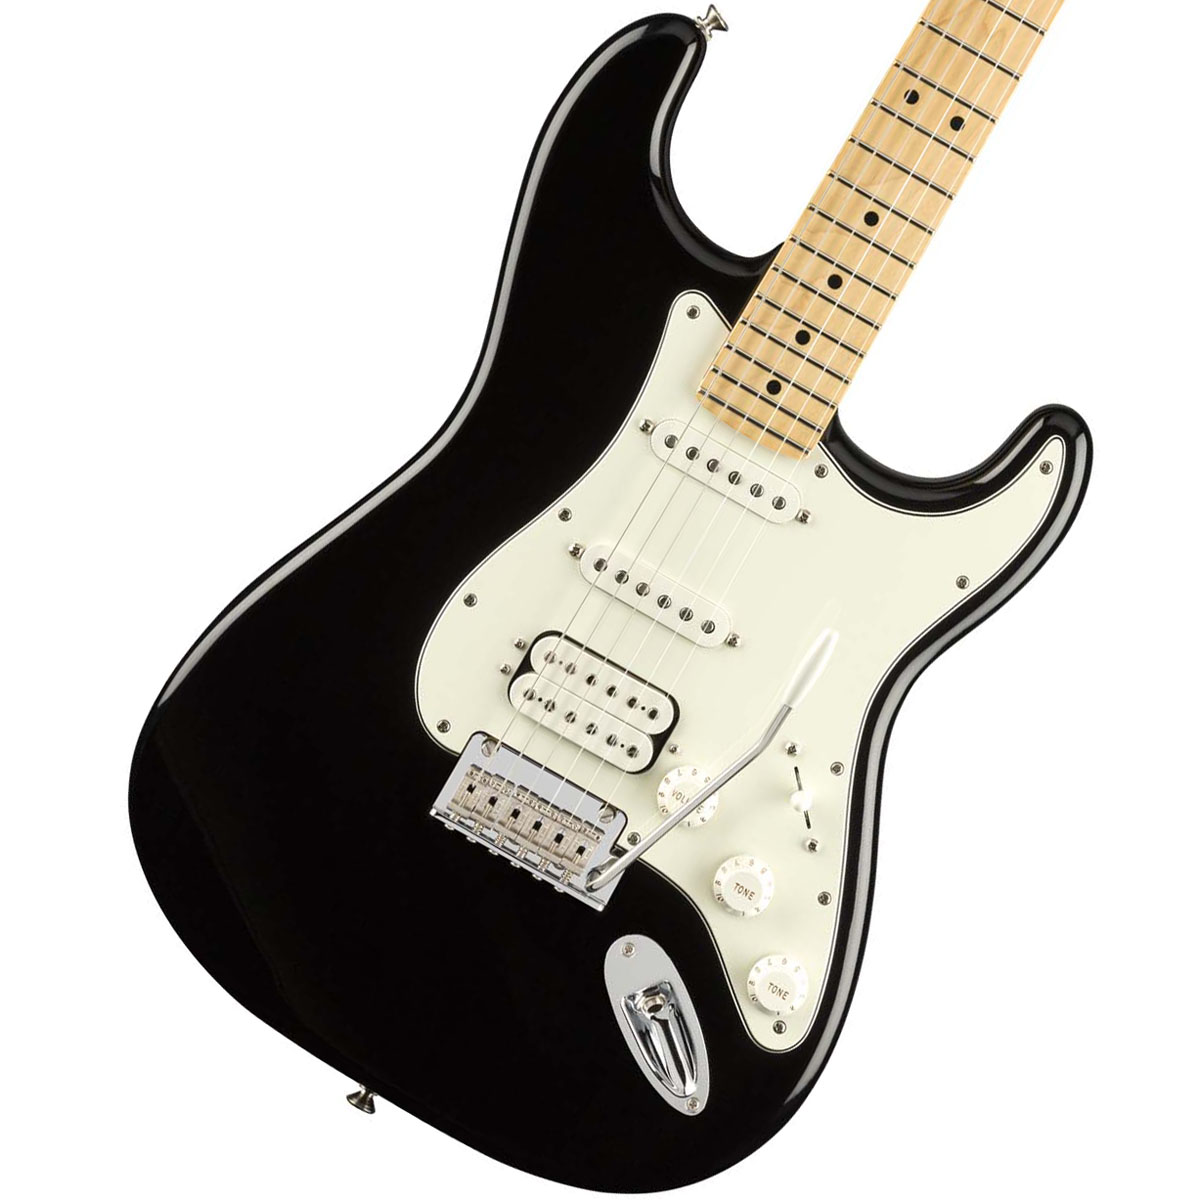 Fender / Player Series Stratocaster HSS Black Maple 《数量限定!FenderアンプFRONTMAN10Gもセット!/+591355890》【YRK】